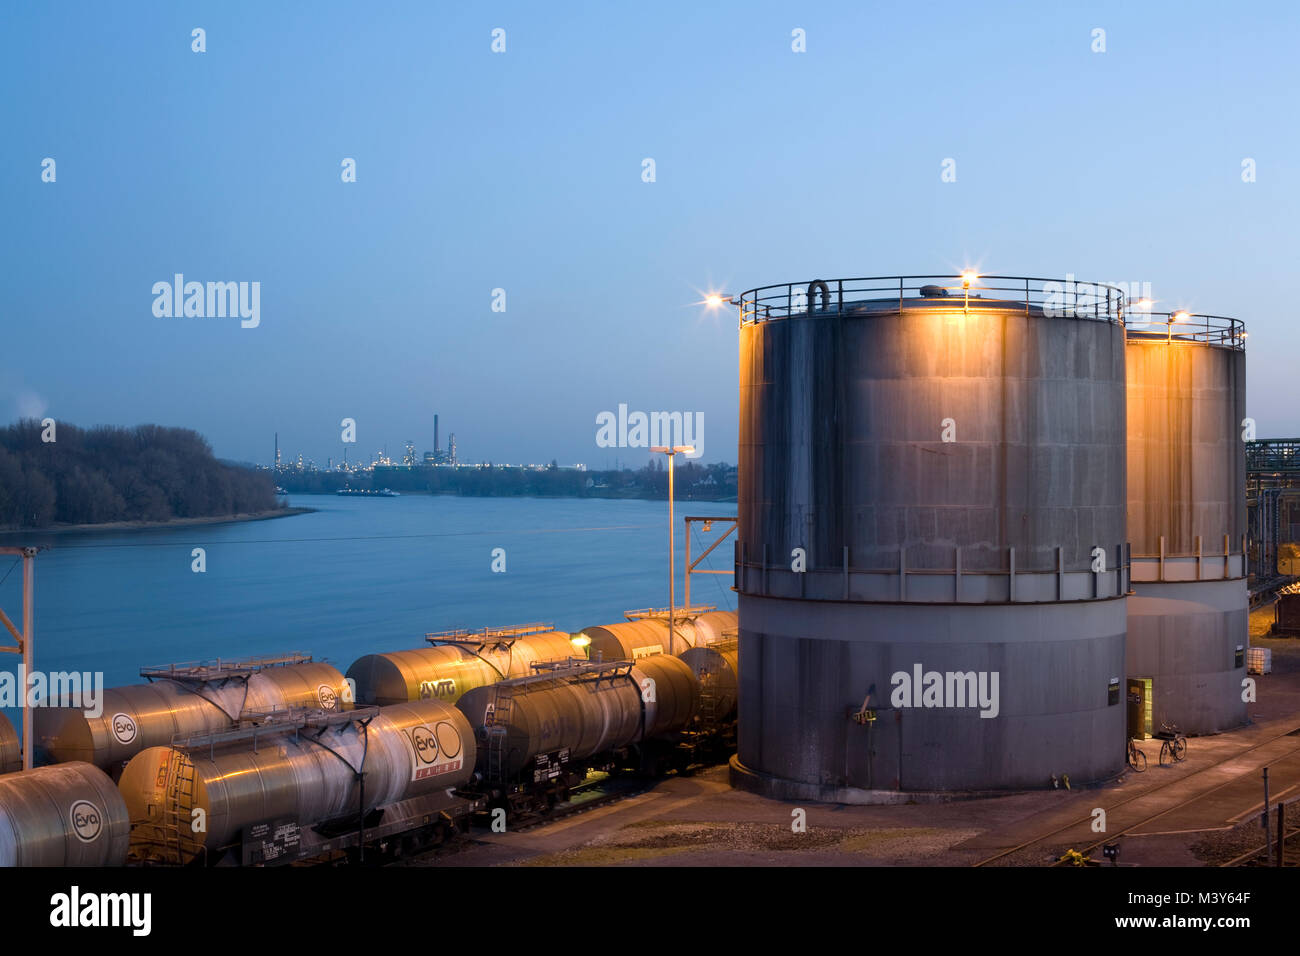 Chemical plant in Wesseling near Cologne, Germany. - Stock Image